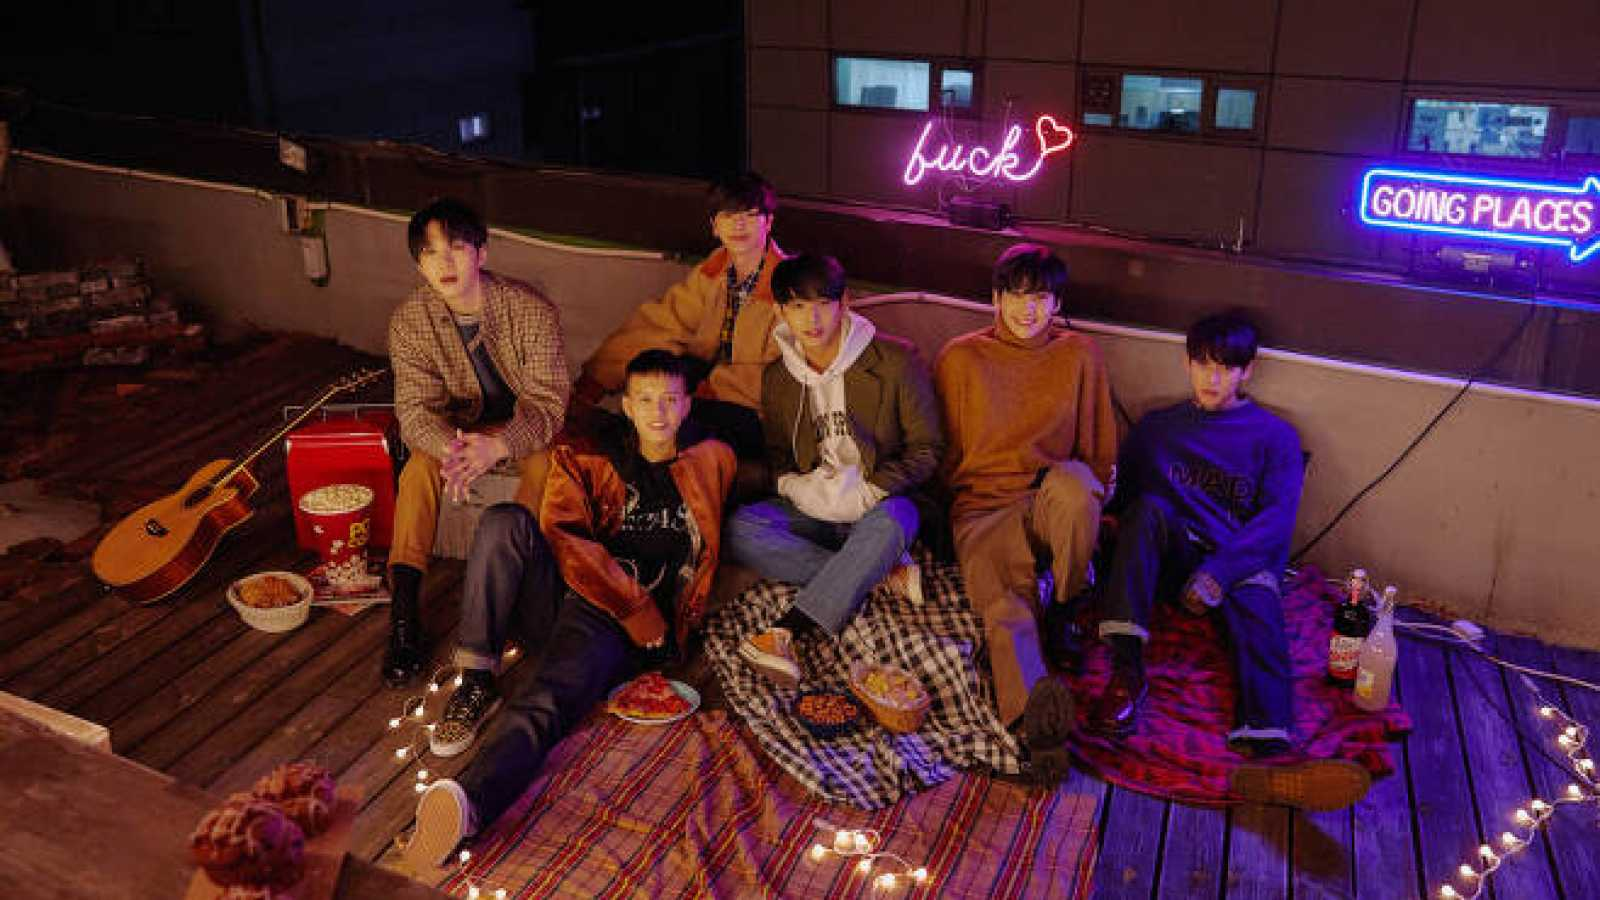 BTOB © Cube Entertainment. All rights reserved